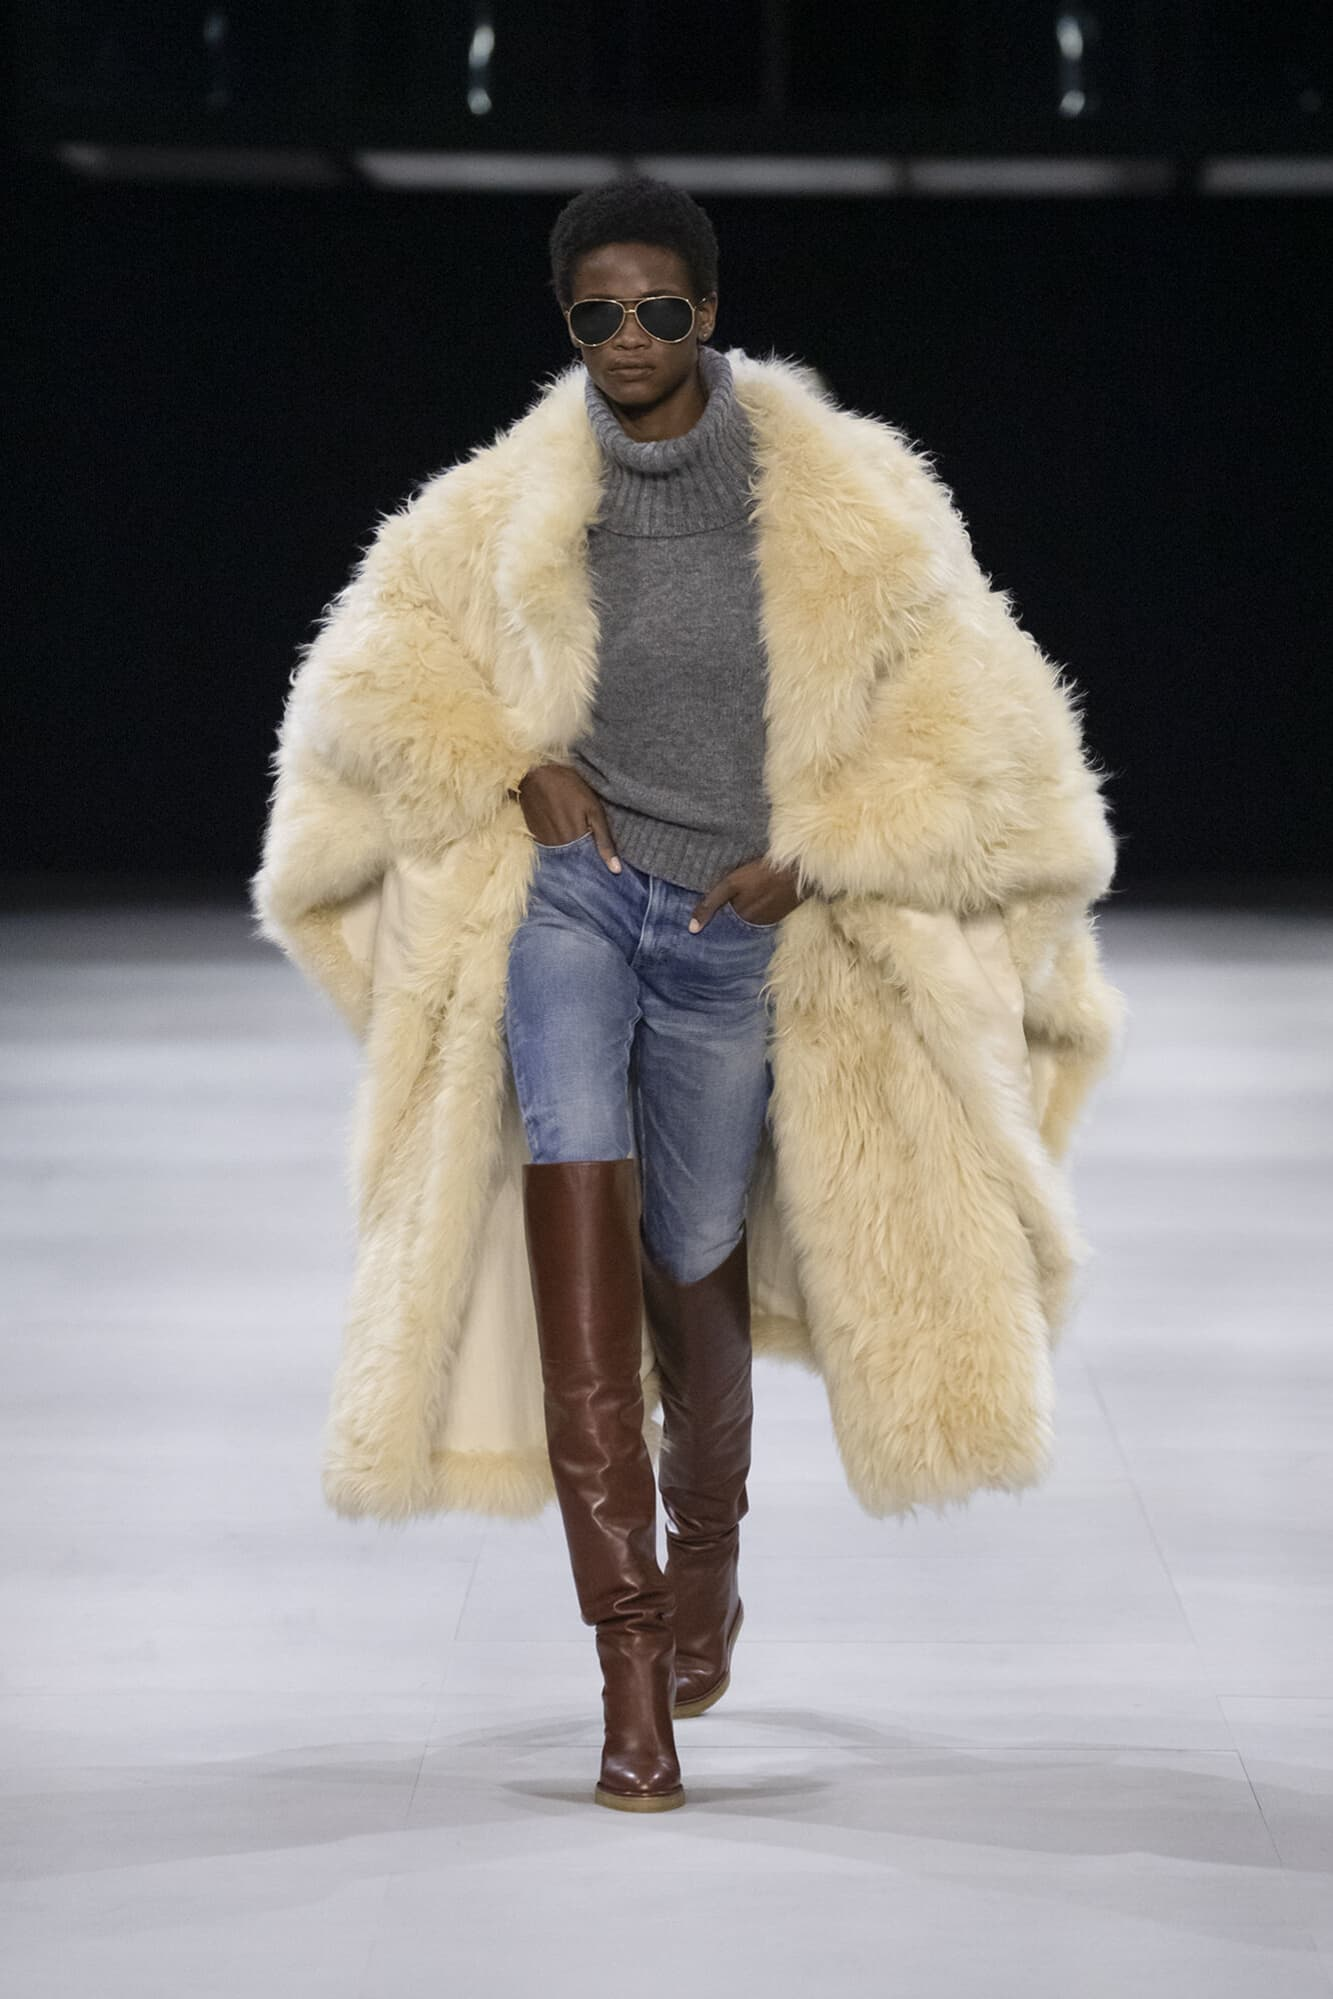 The big fake fur... and the worn jeans.